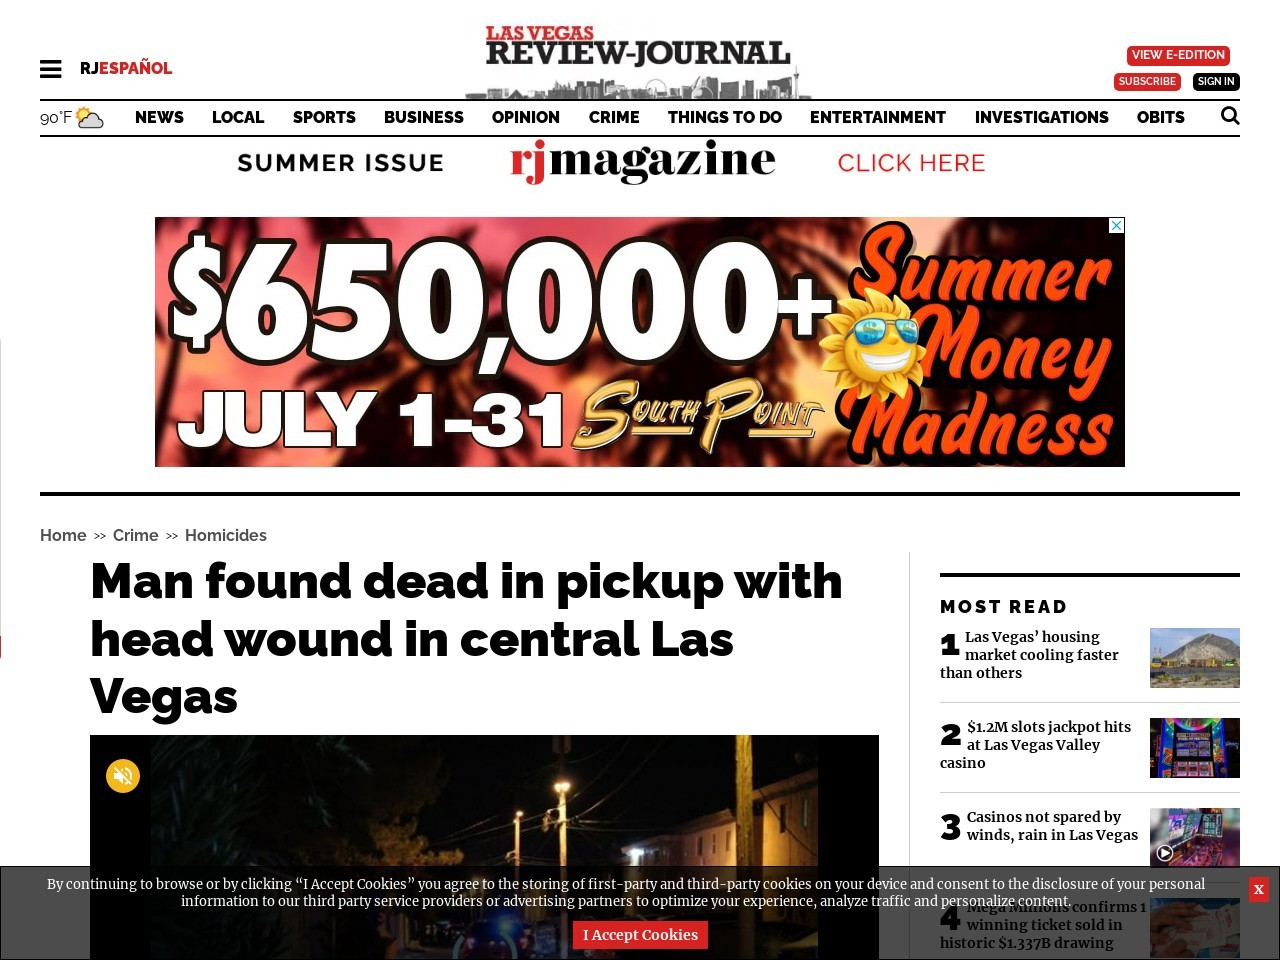 Man found dead in pickup with head wound in central Las Vegas